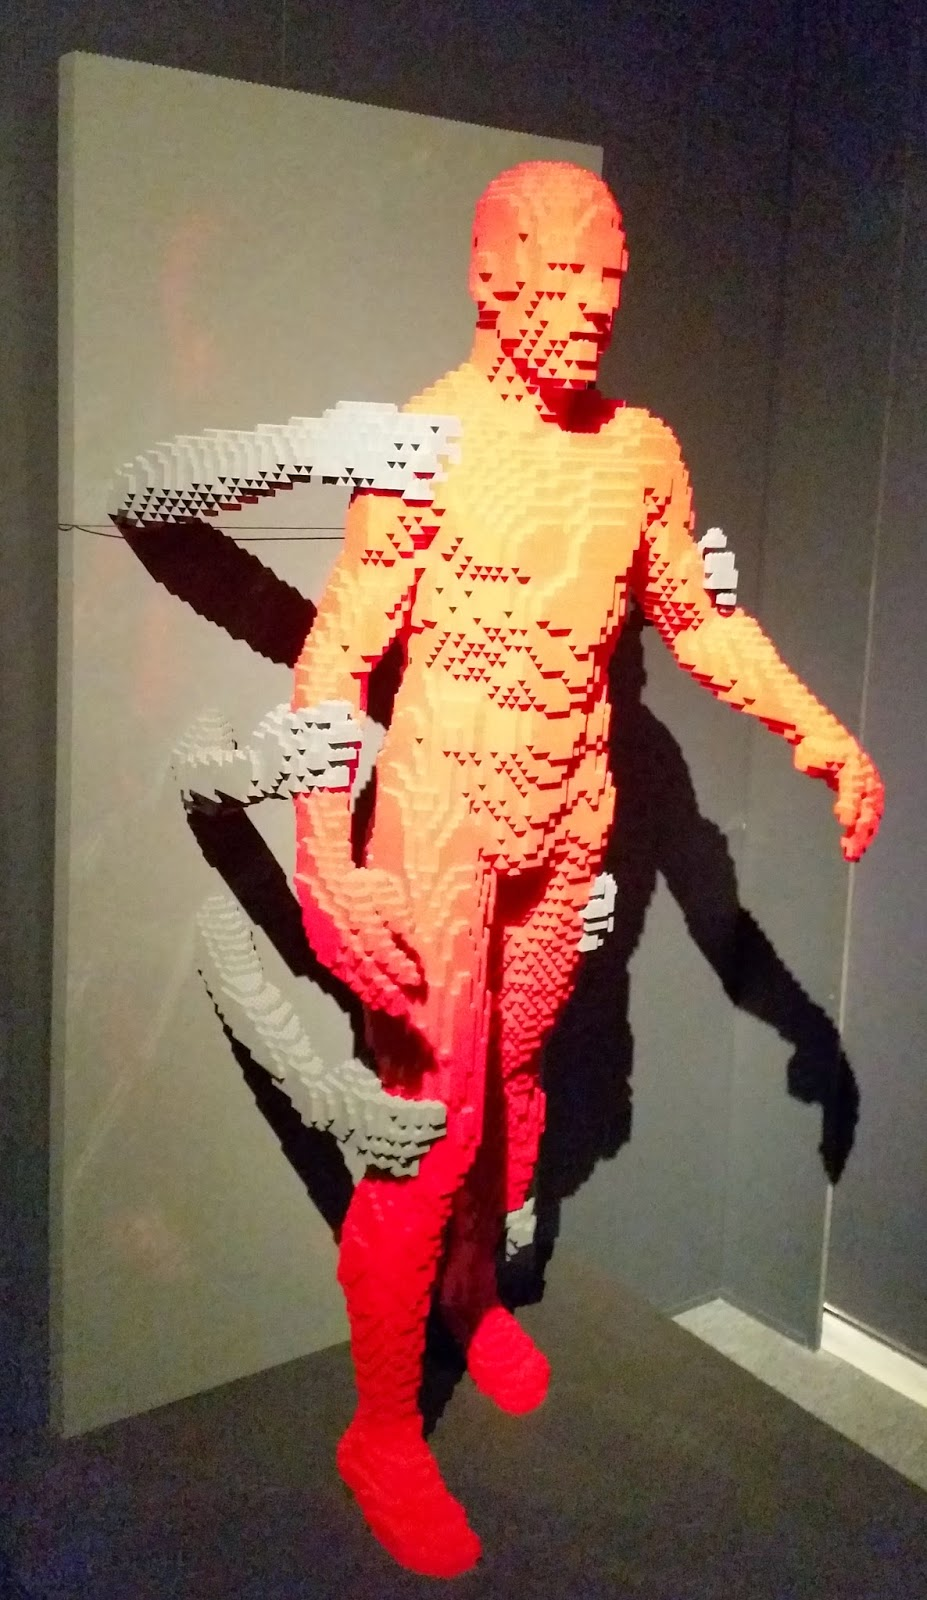 Lego man being held back by hands